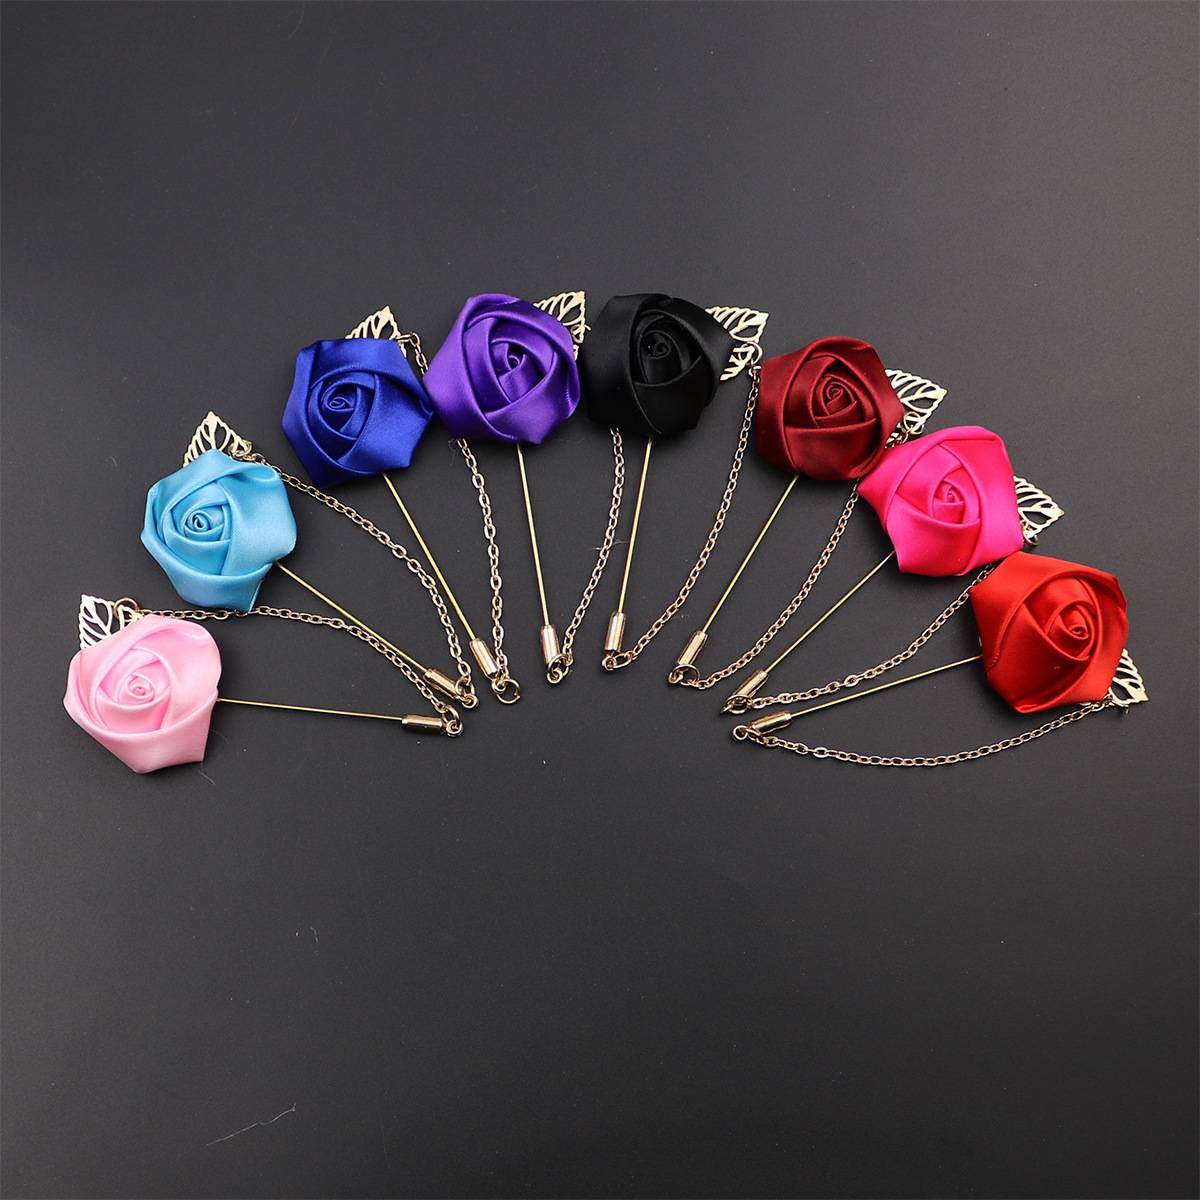 Gold Color Foliage Red Rose Brooch Corsage Collar Flowers Long Needle With Chain Lapel Pin Formal Suit Shirt Broche Acessorios